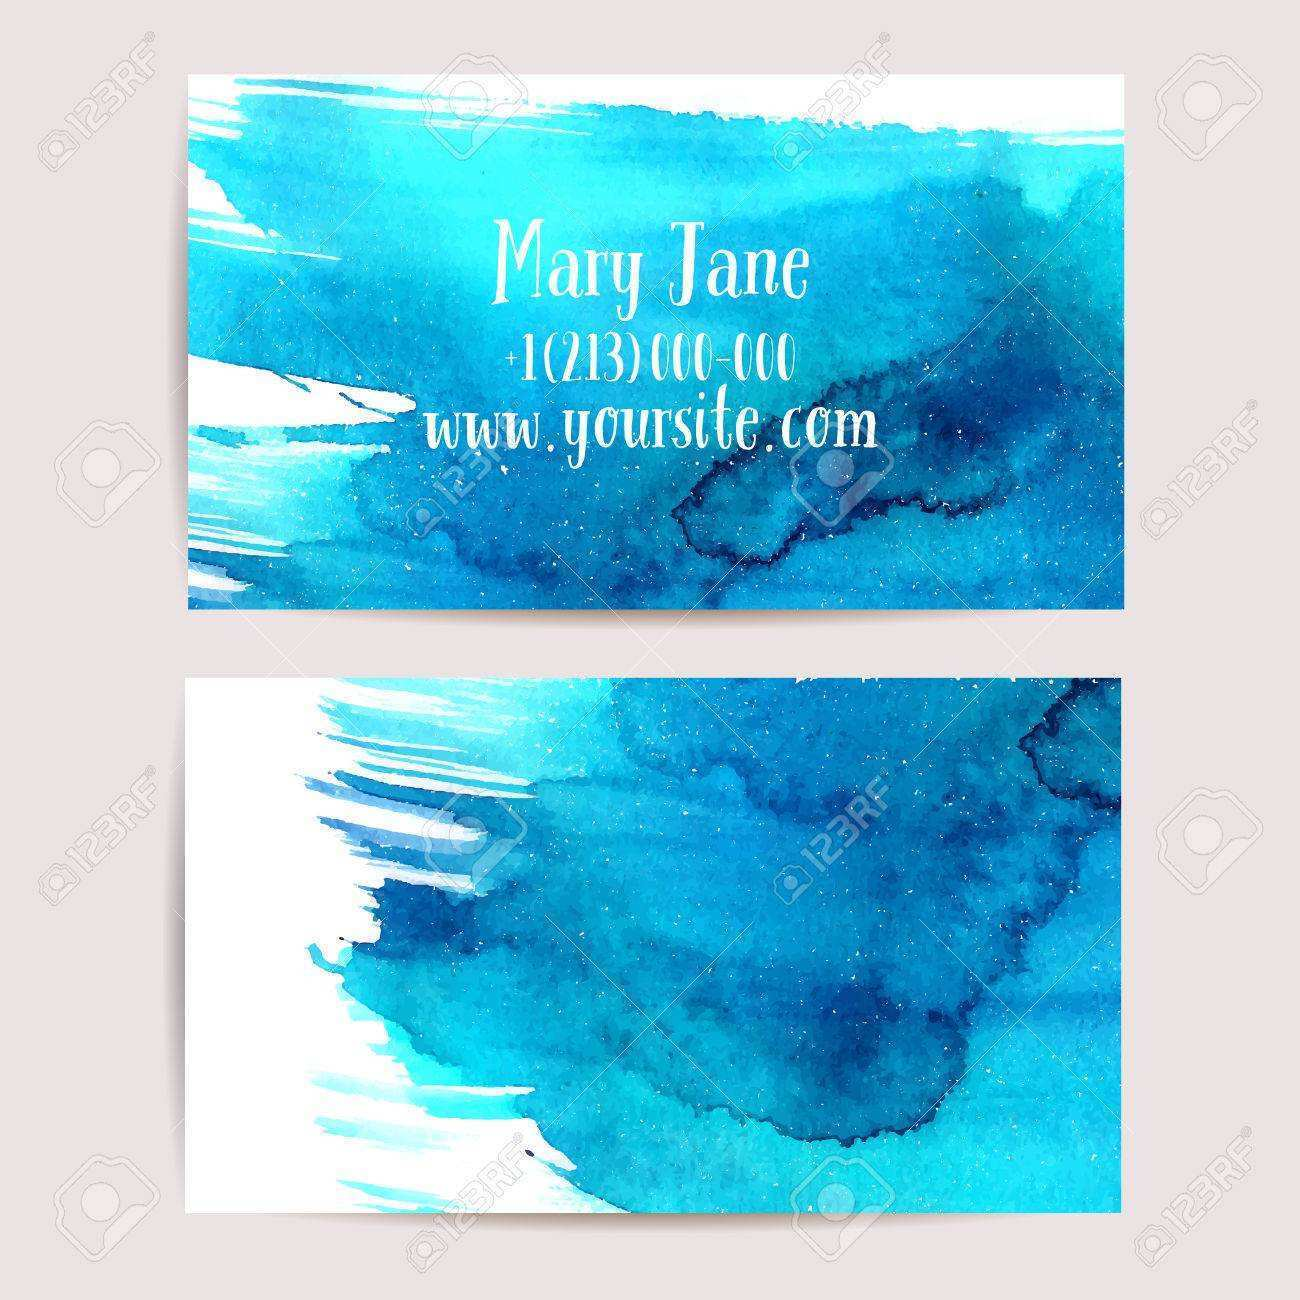 16 Adding Business Card Templates Watercolor in Photoshop with Business Card Templates Watercolor